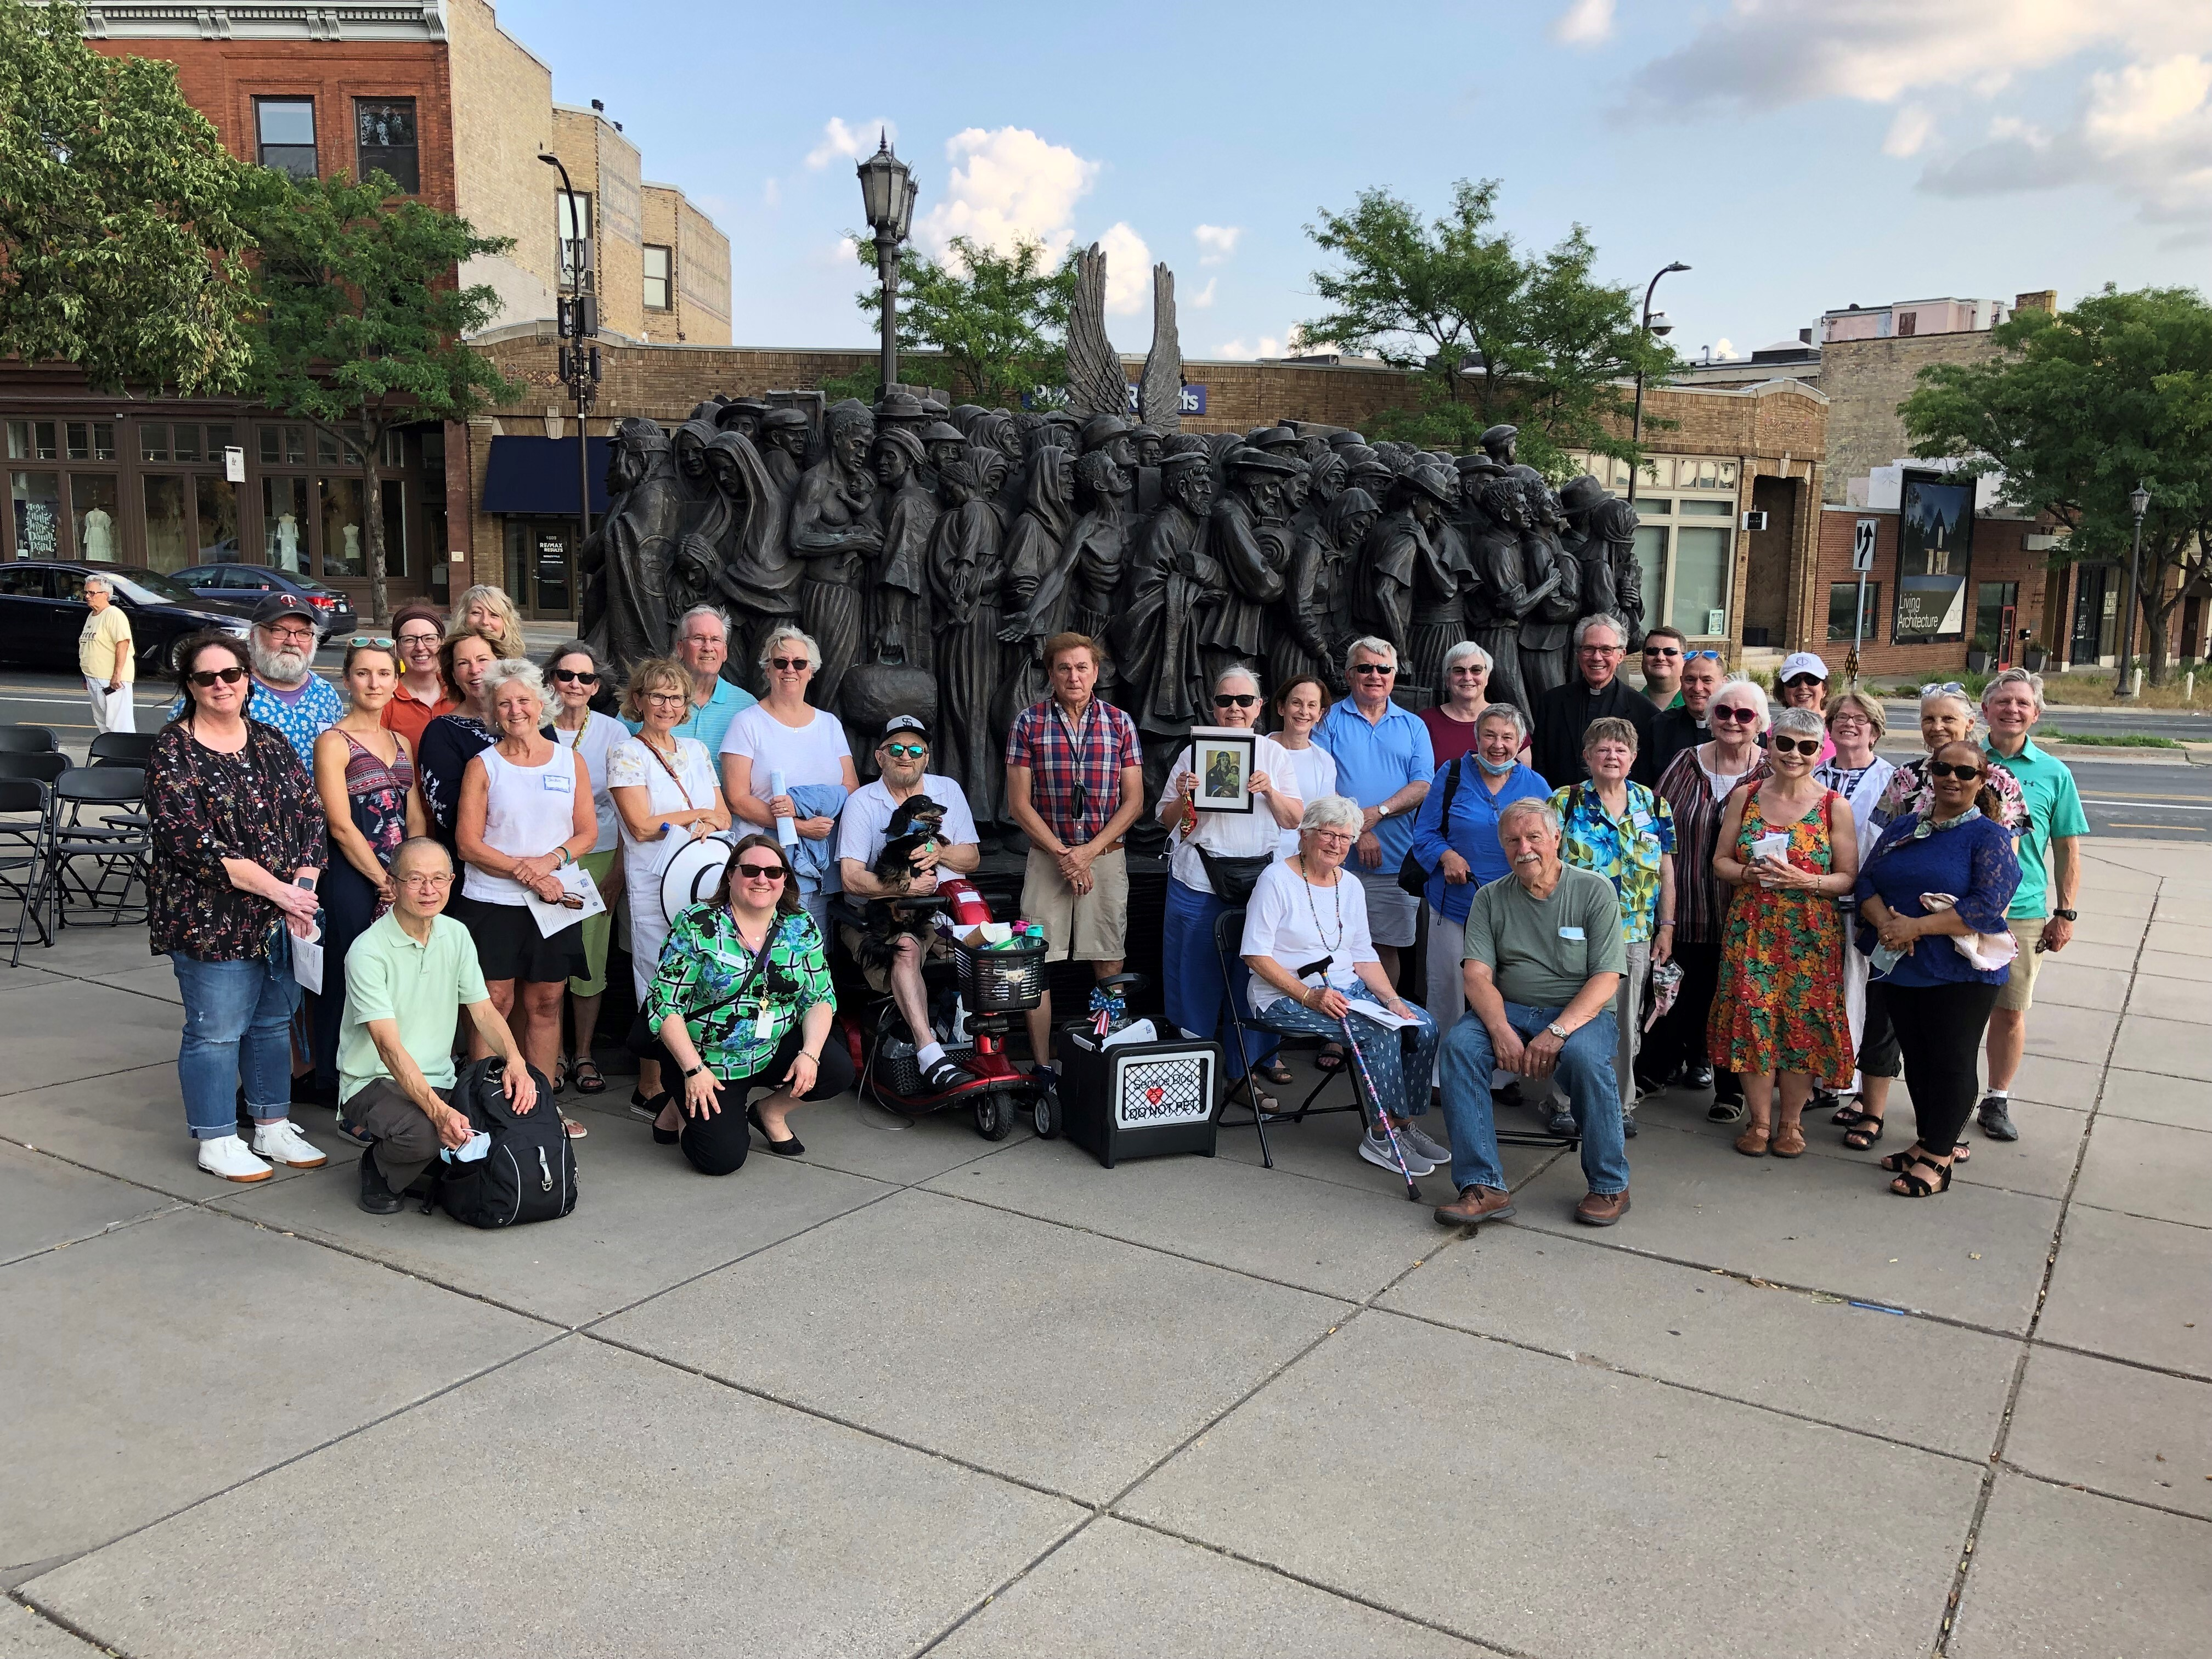 Hosting the Angels Unawares statue at the Basilica of St. Mary, Minneapolis